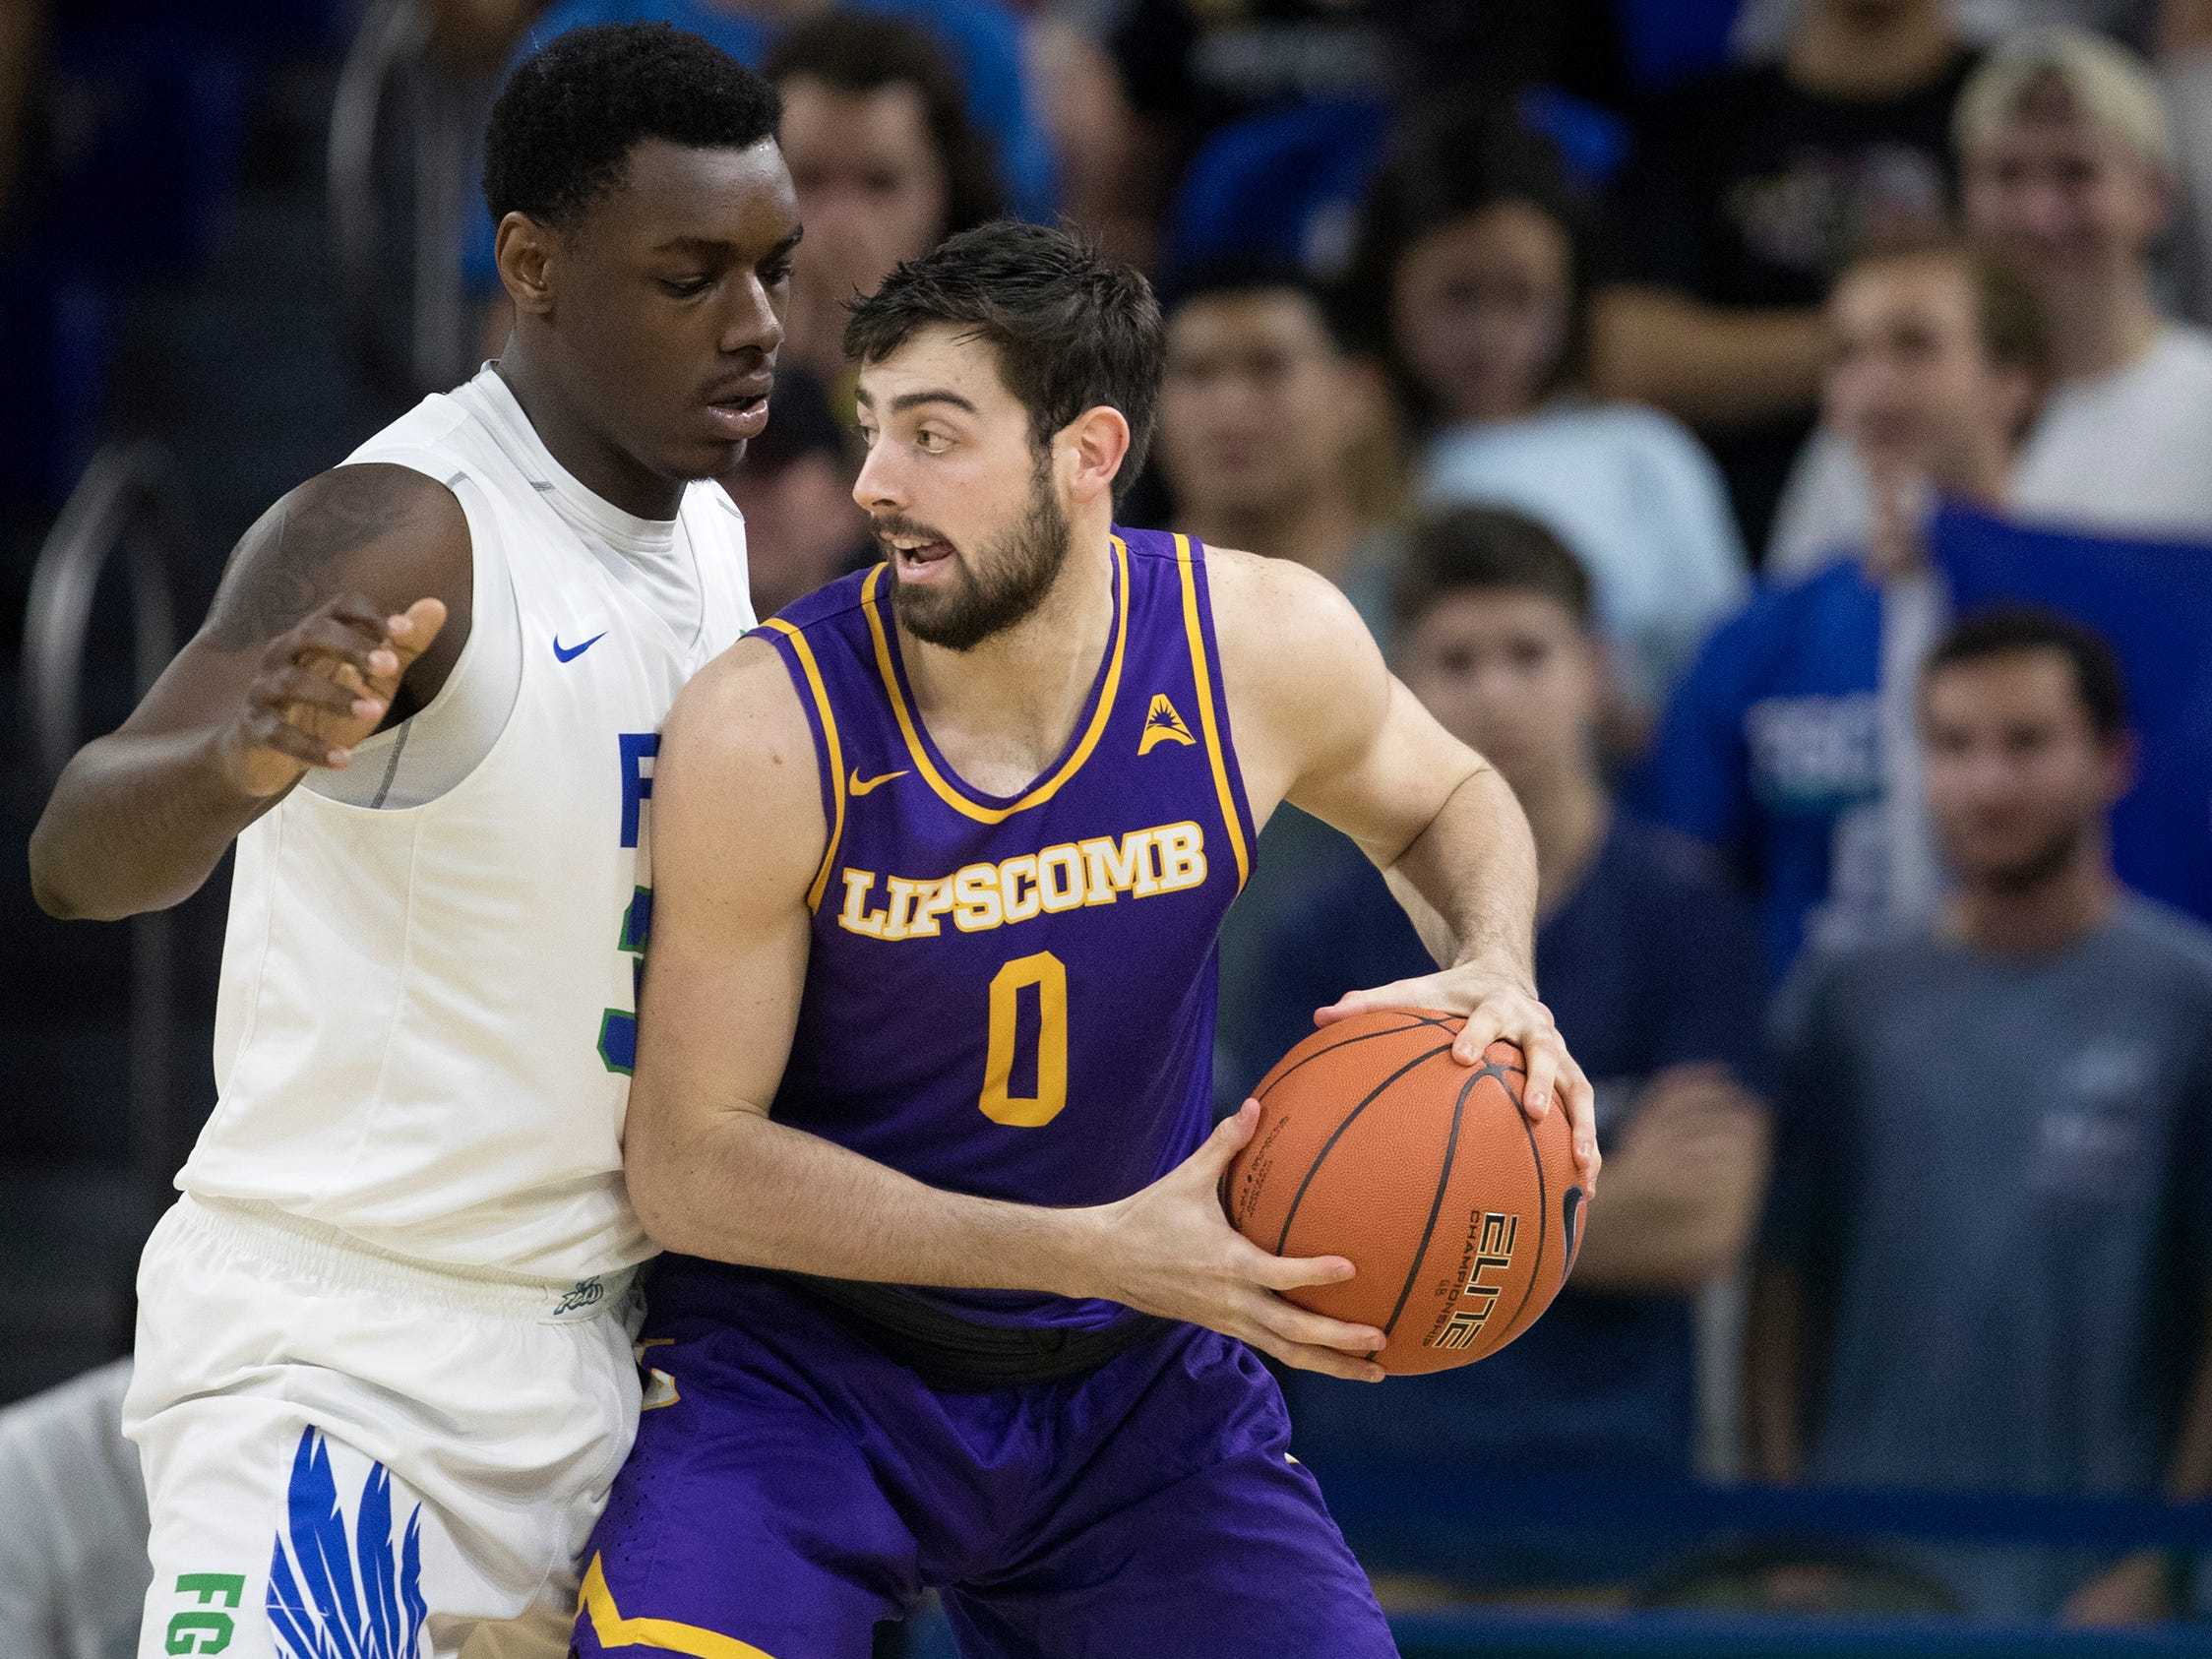 Lipscomb's Rob Marberry, right, drives to the basket against FGCU's Brian Thomas on Wednesday at FGCU in Fort Myers. FGCU beat Lipscomb 67-61.